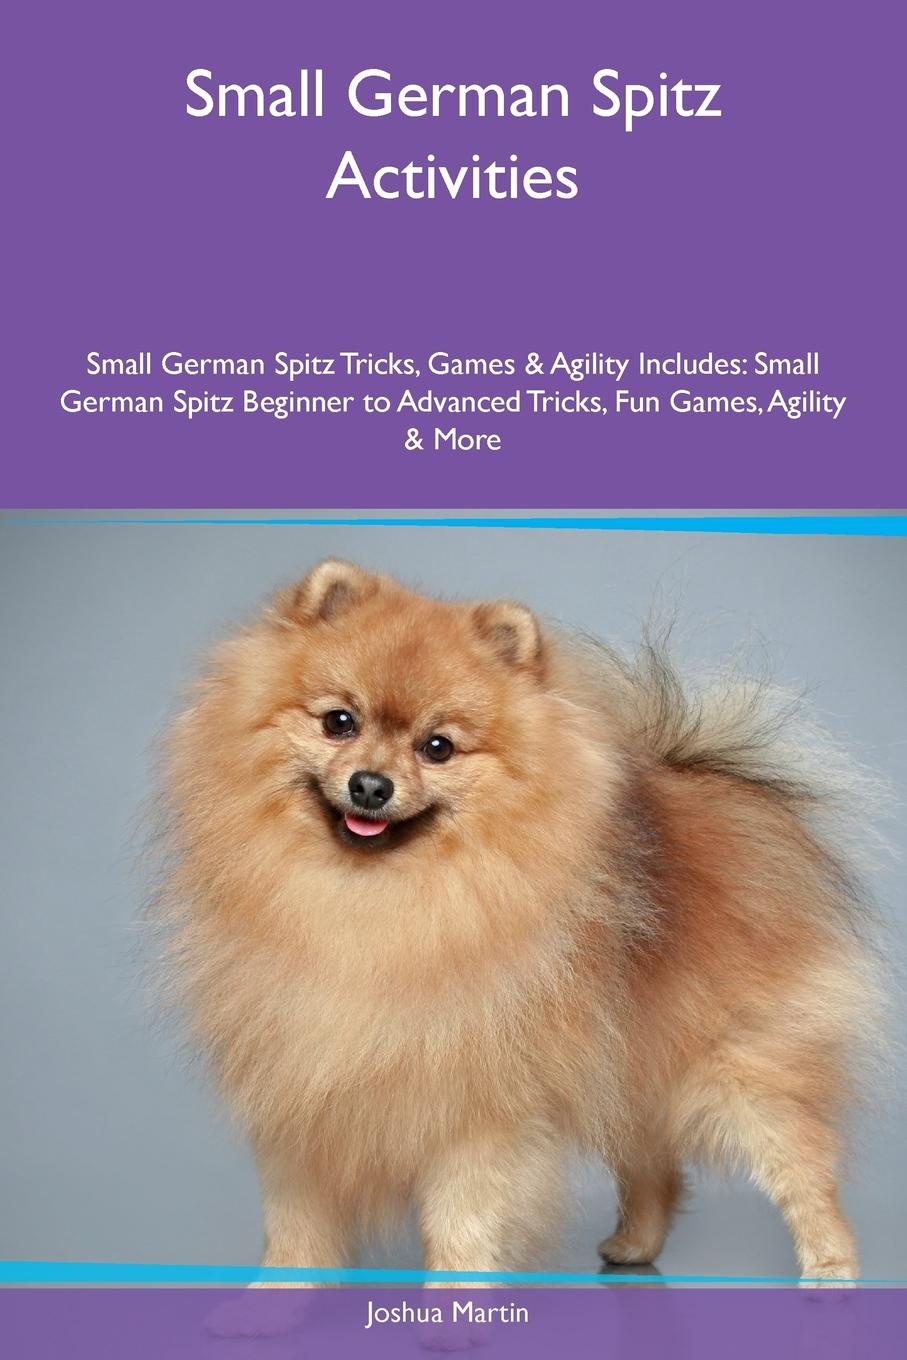 Joshua Martin Small German Spitz Activities Small German Spitz Tricks, Games & Agility Includes. Small German Spitz Beginner to Advanced Tricks, Fun Games, Agility & More games bis german a1